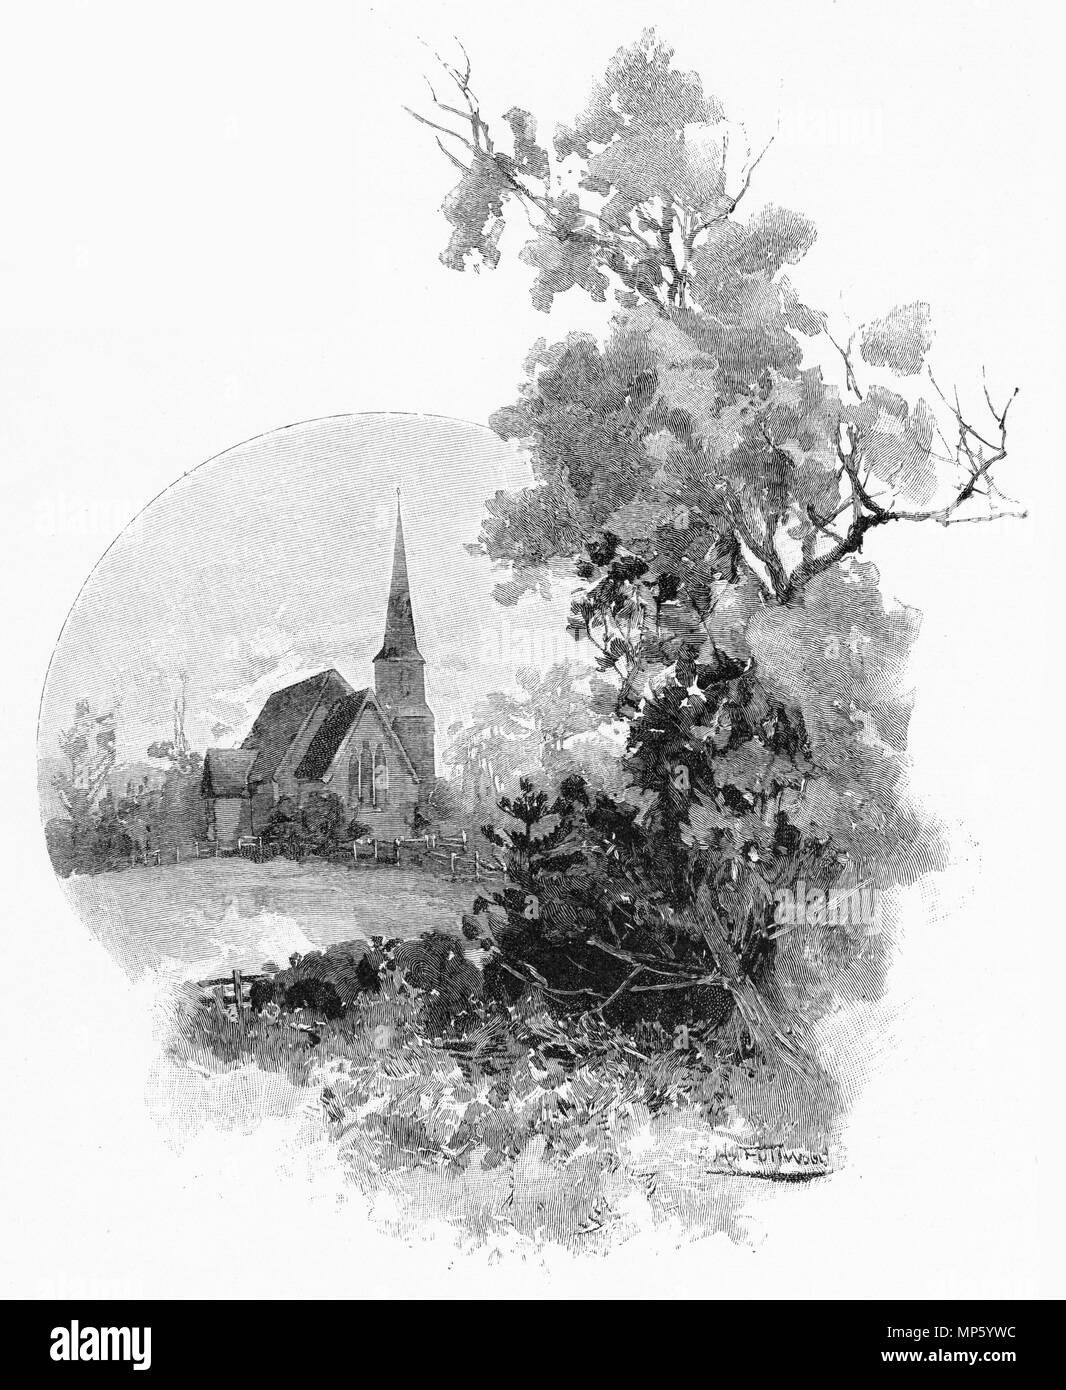 Engraving of a small church at the Mauku Battlefield, New Zealand. From the Picturesque Atlas of Australasia Vol 3, 1886 - Stock Image